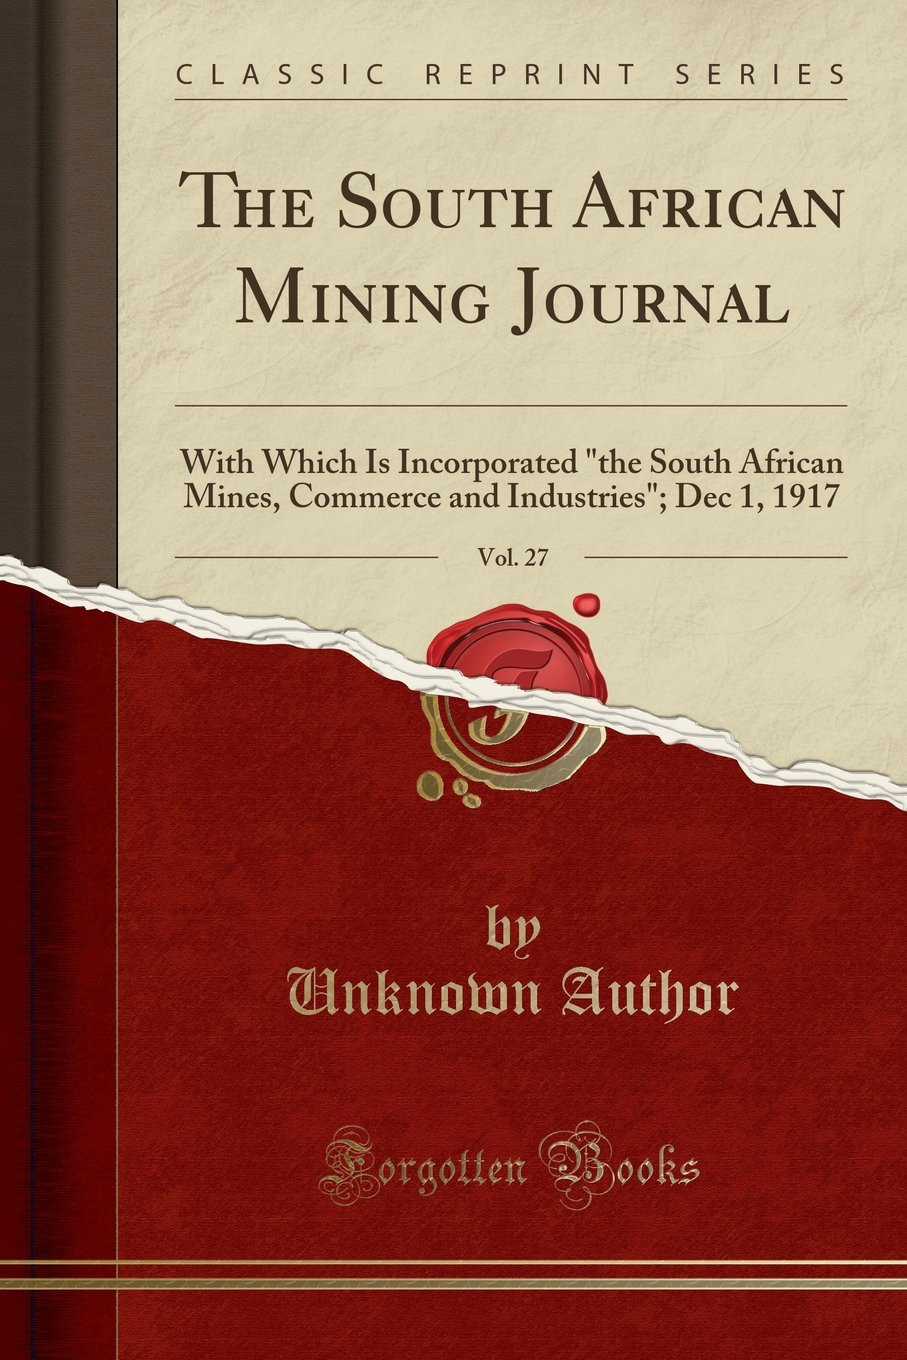 """The South African Mining Journal, Vol. 27: With Which Is Incorporated """"the South African Mines, Commerce and Industries""""; Dec 1, 1917 (Classic Reprint) ebook"""